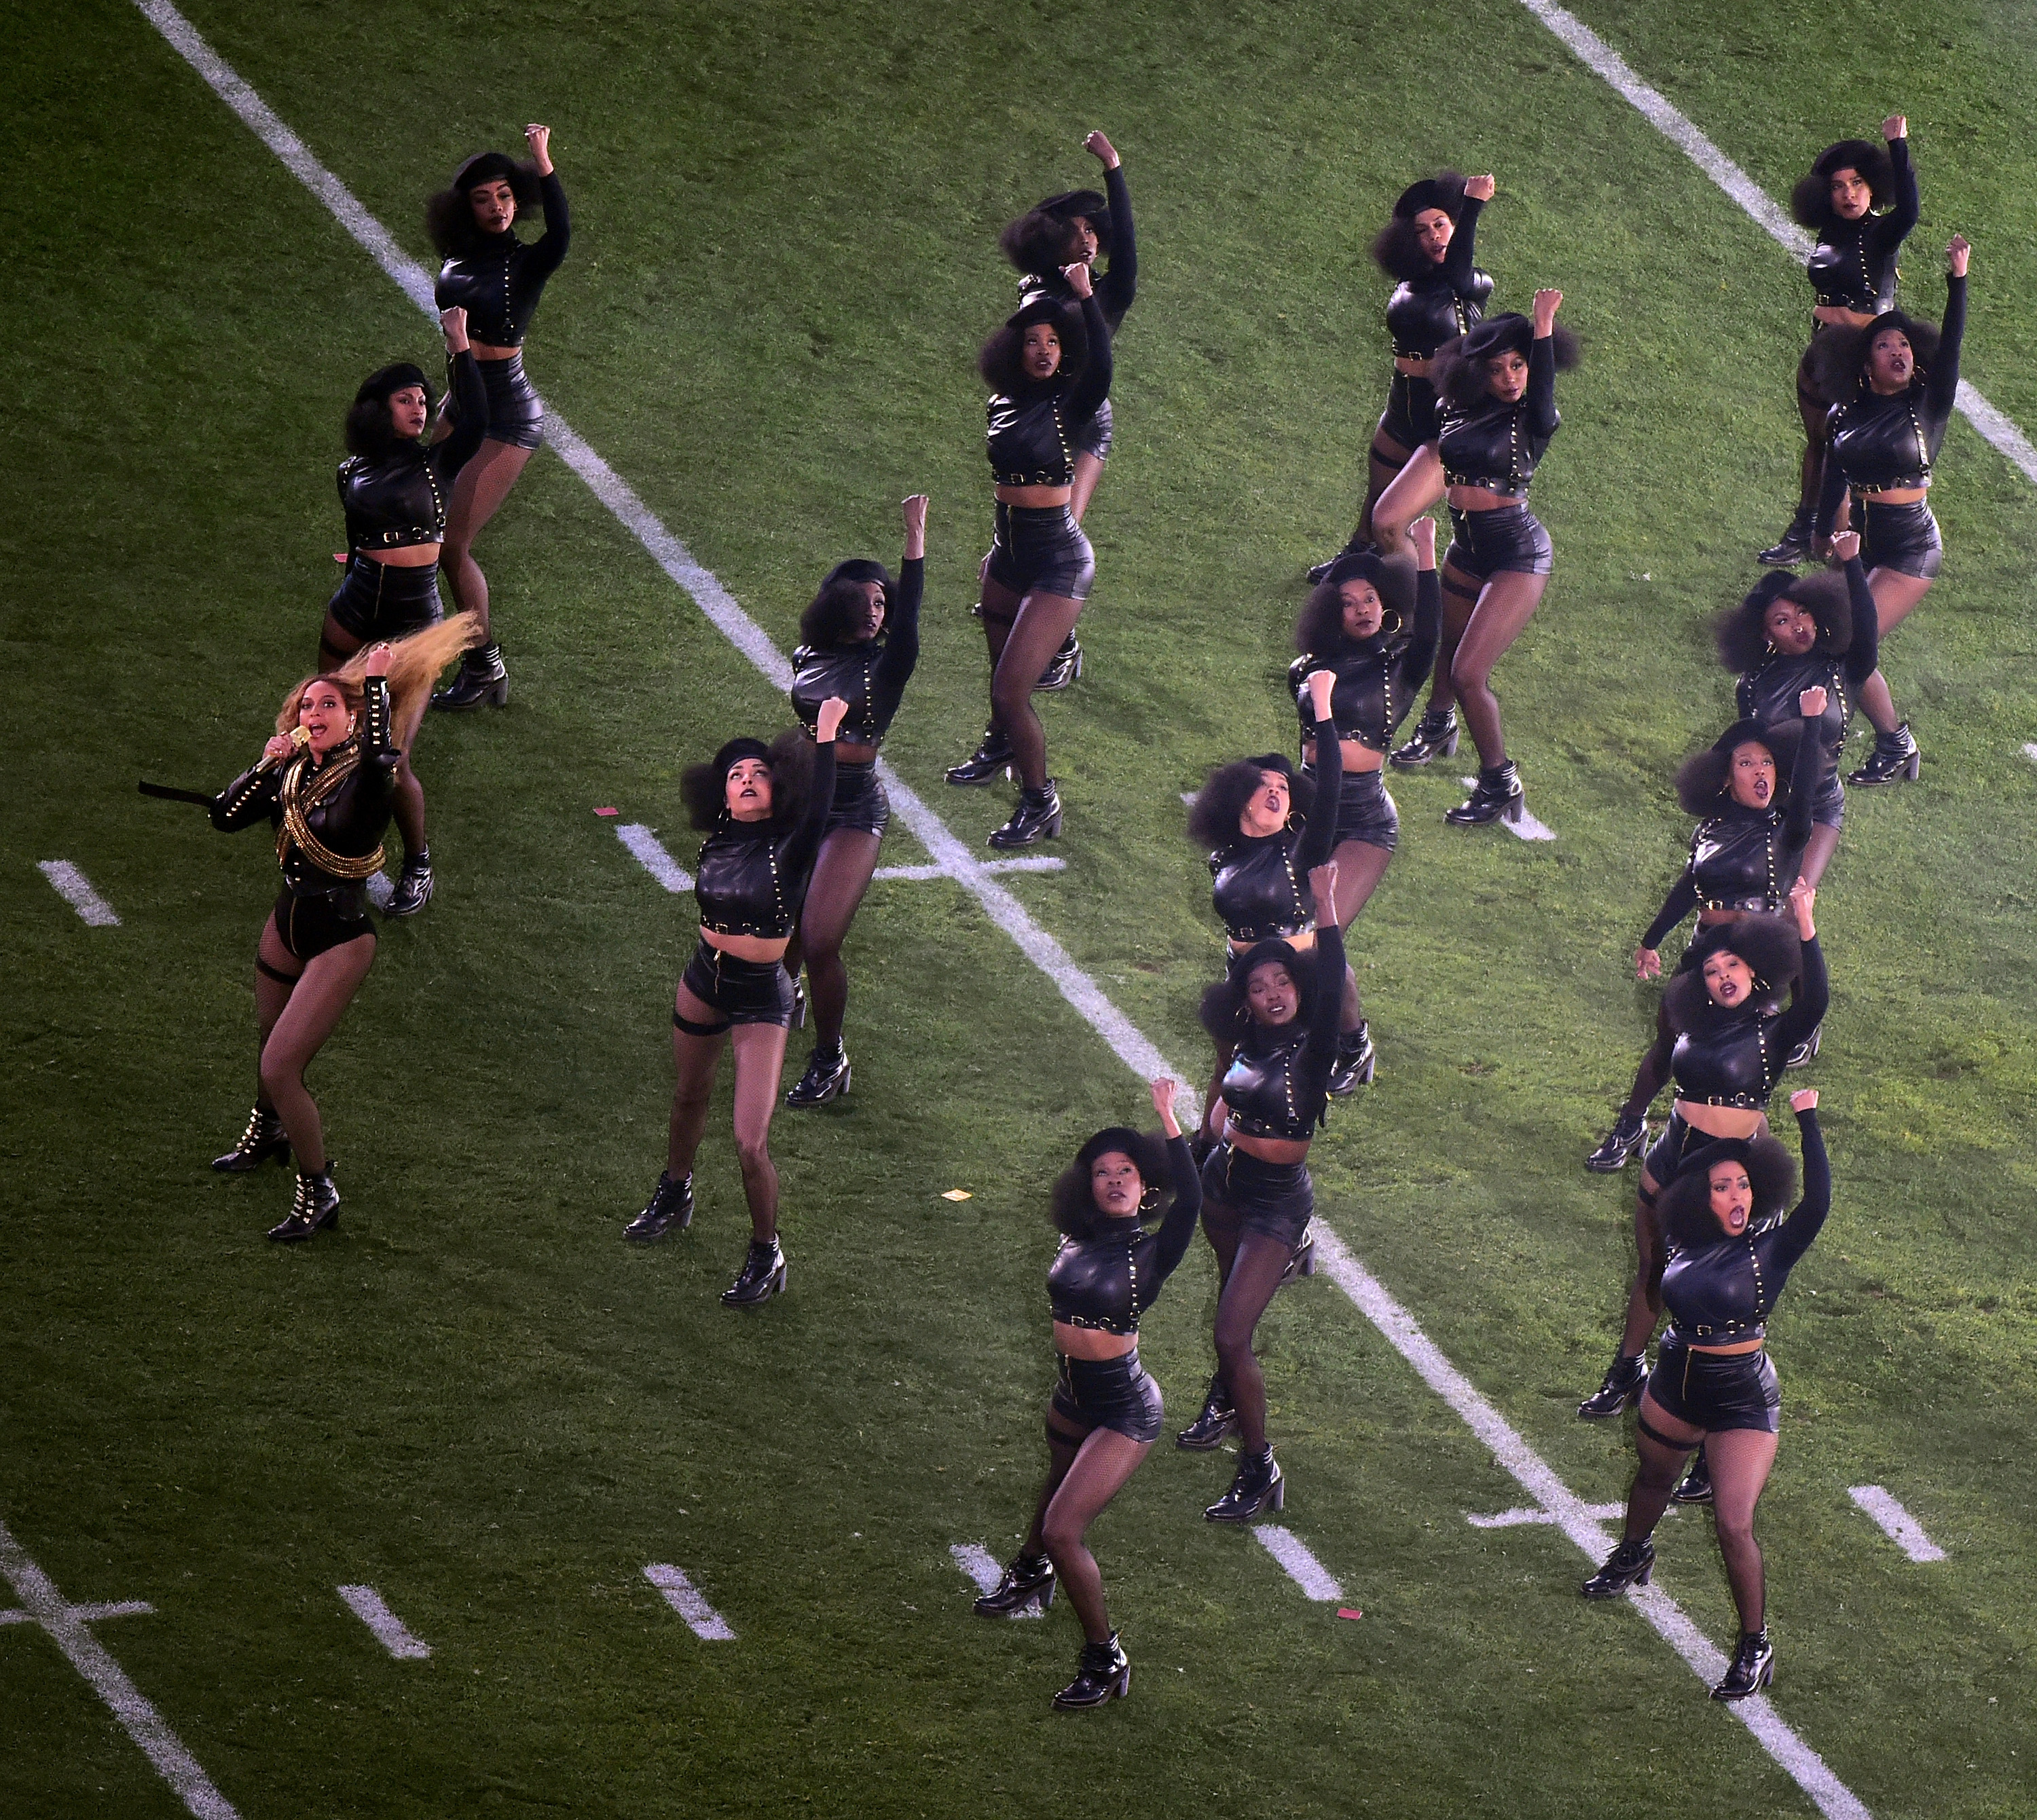 Beyonce and her dancers perform during the Super Bowl 50 halftime show at Levi's Stadium on Feb. 7, 2016, in Santa Clara, California.